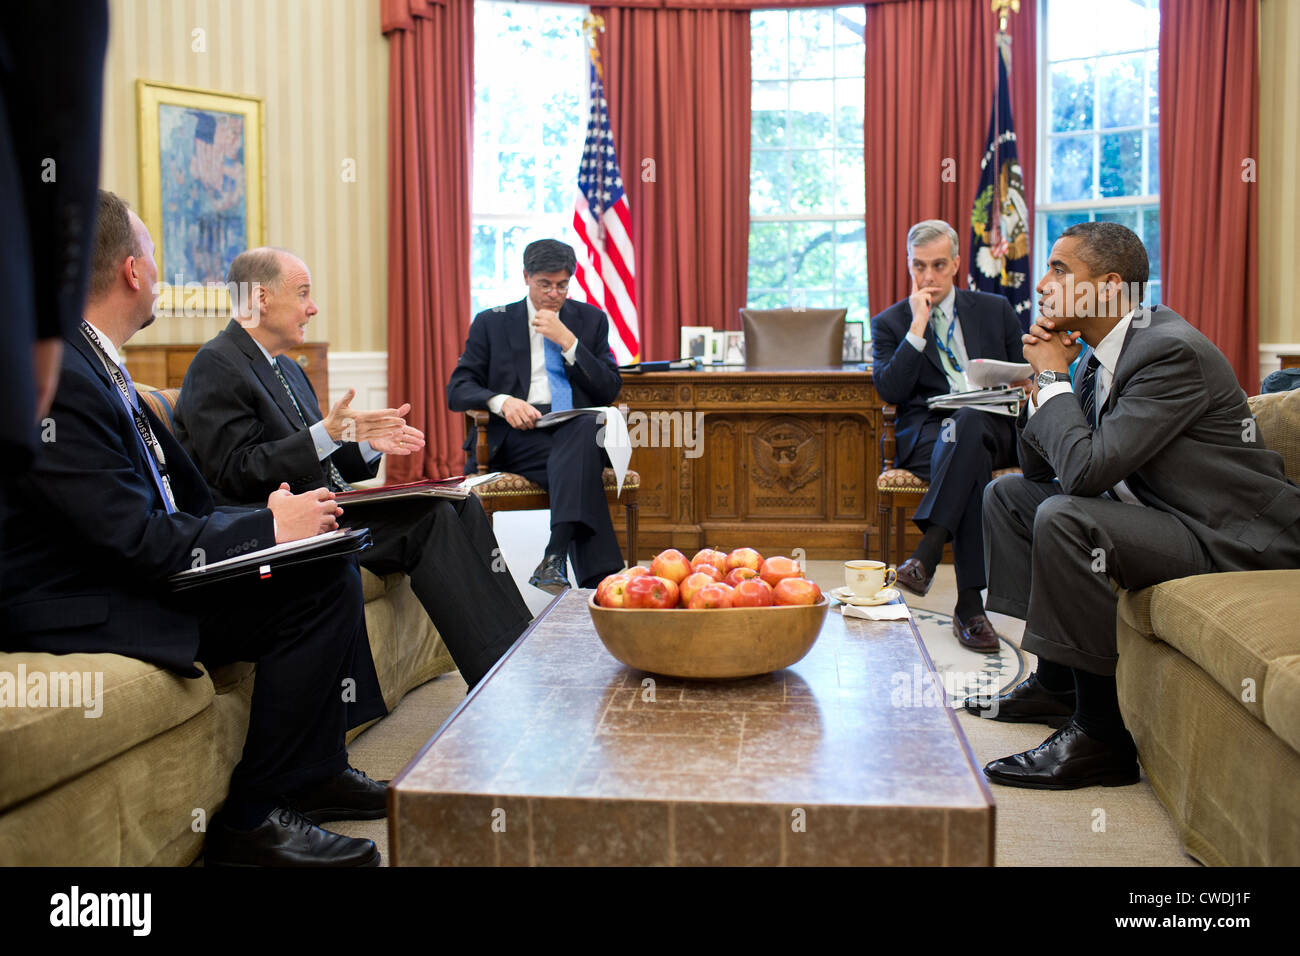 President Barack Obama meets with senior advisors in the Oval Office before a phone call with President Vladimir - Stock Image